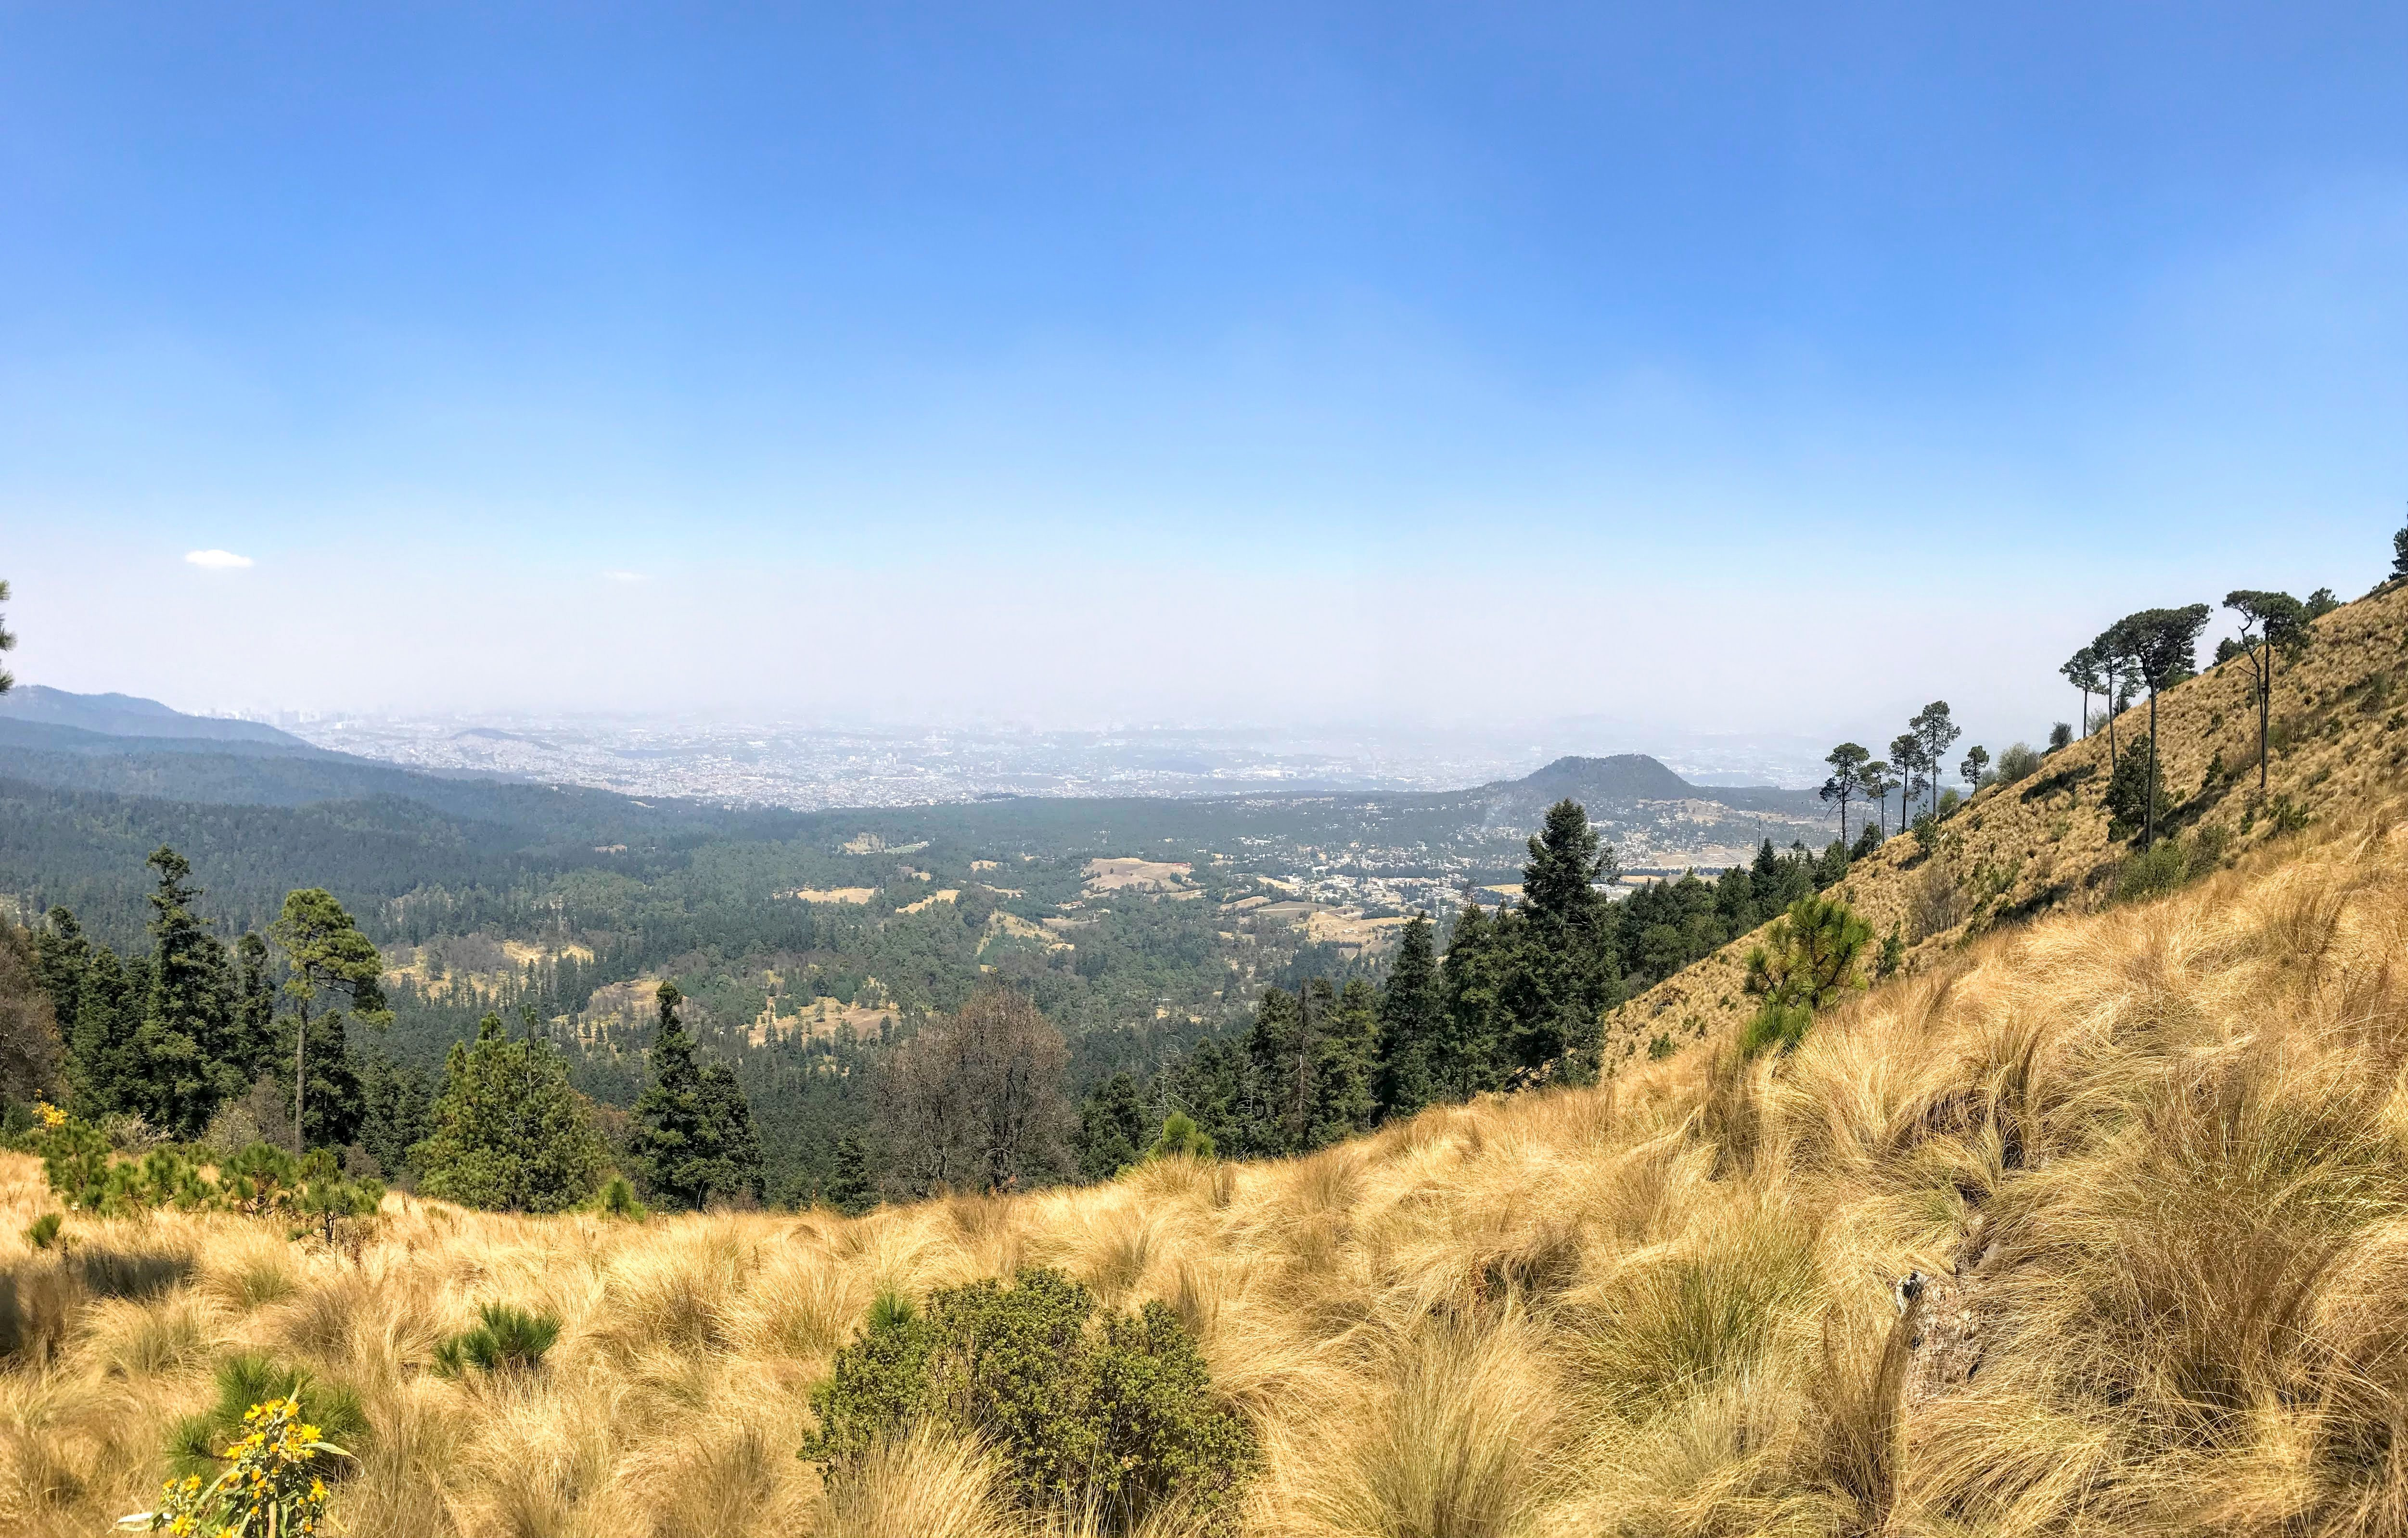 hiking in Cumbres del Ajusco National Park